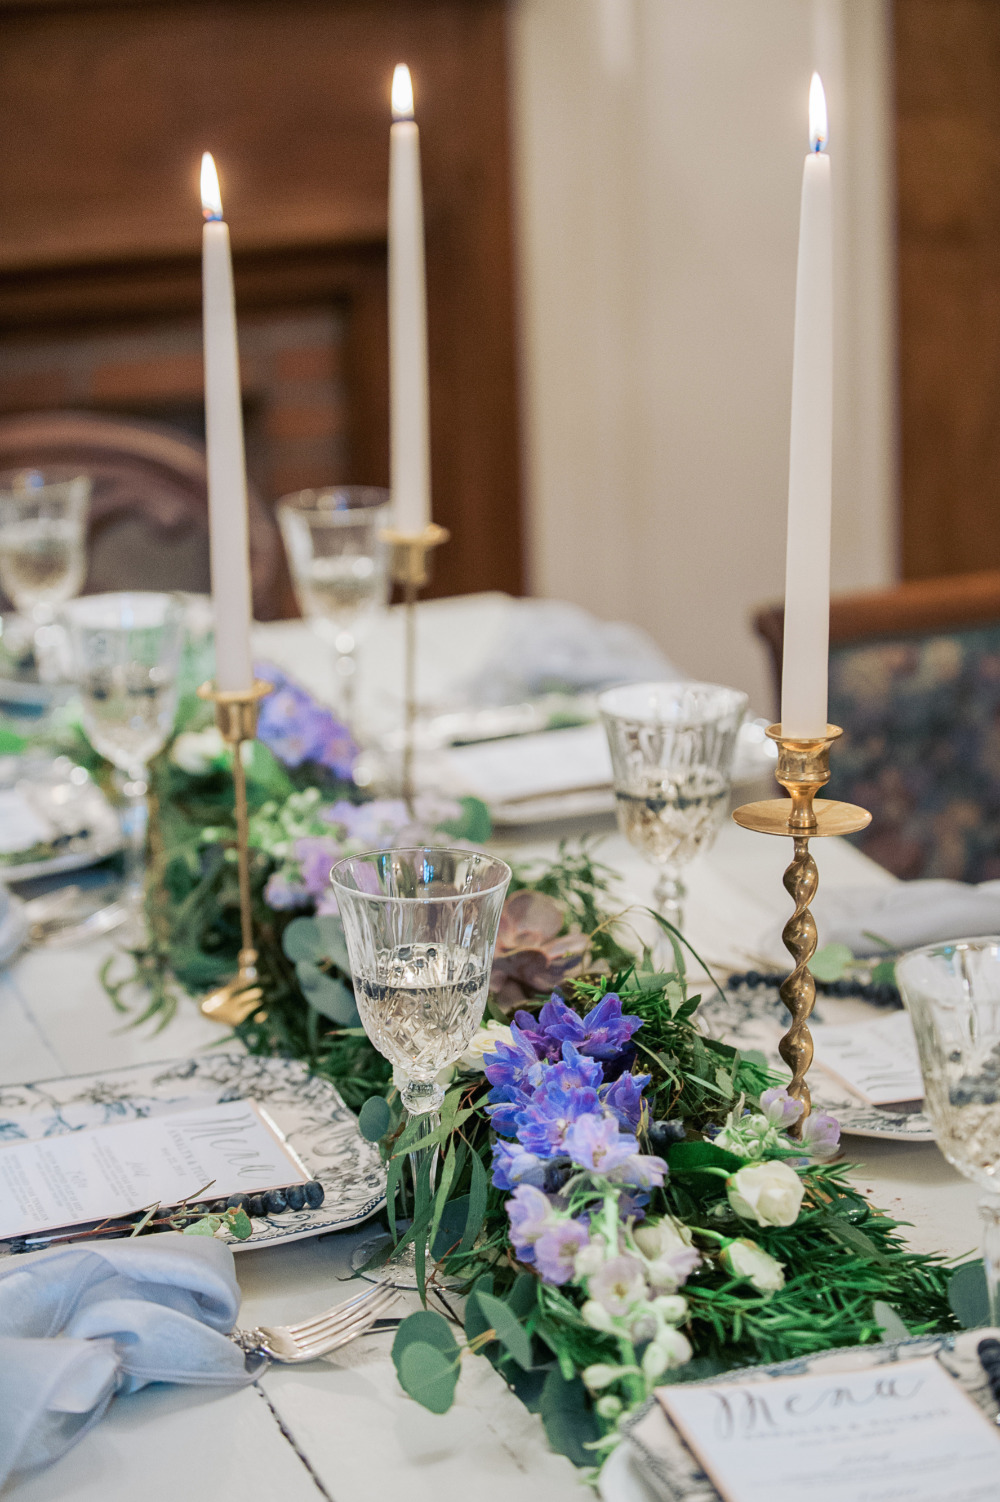 floral table runner and candles